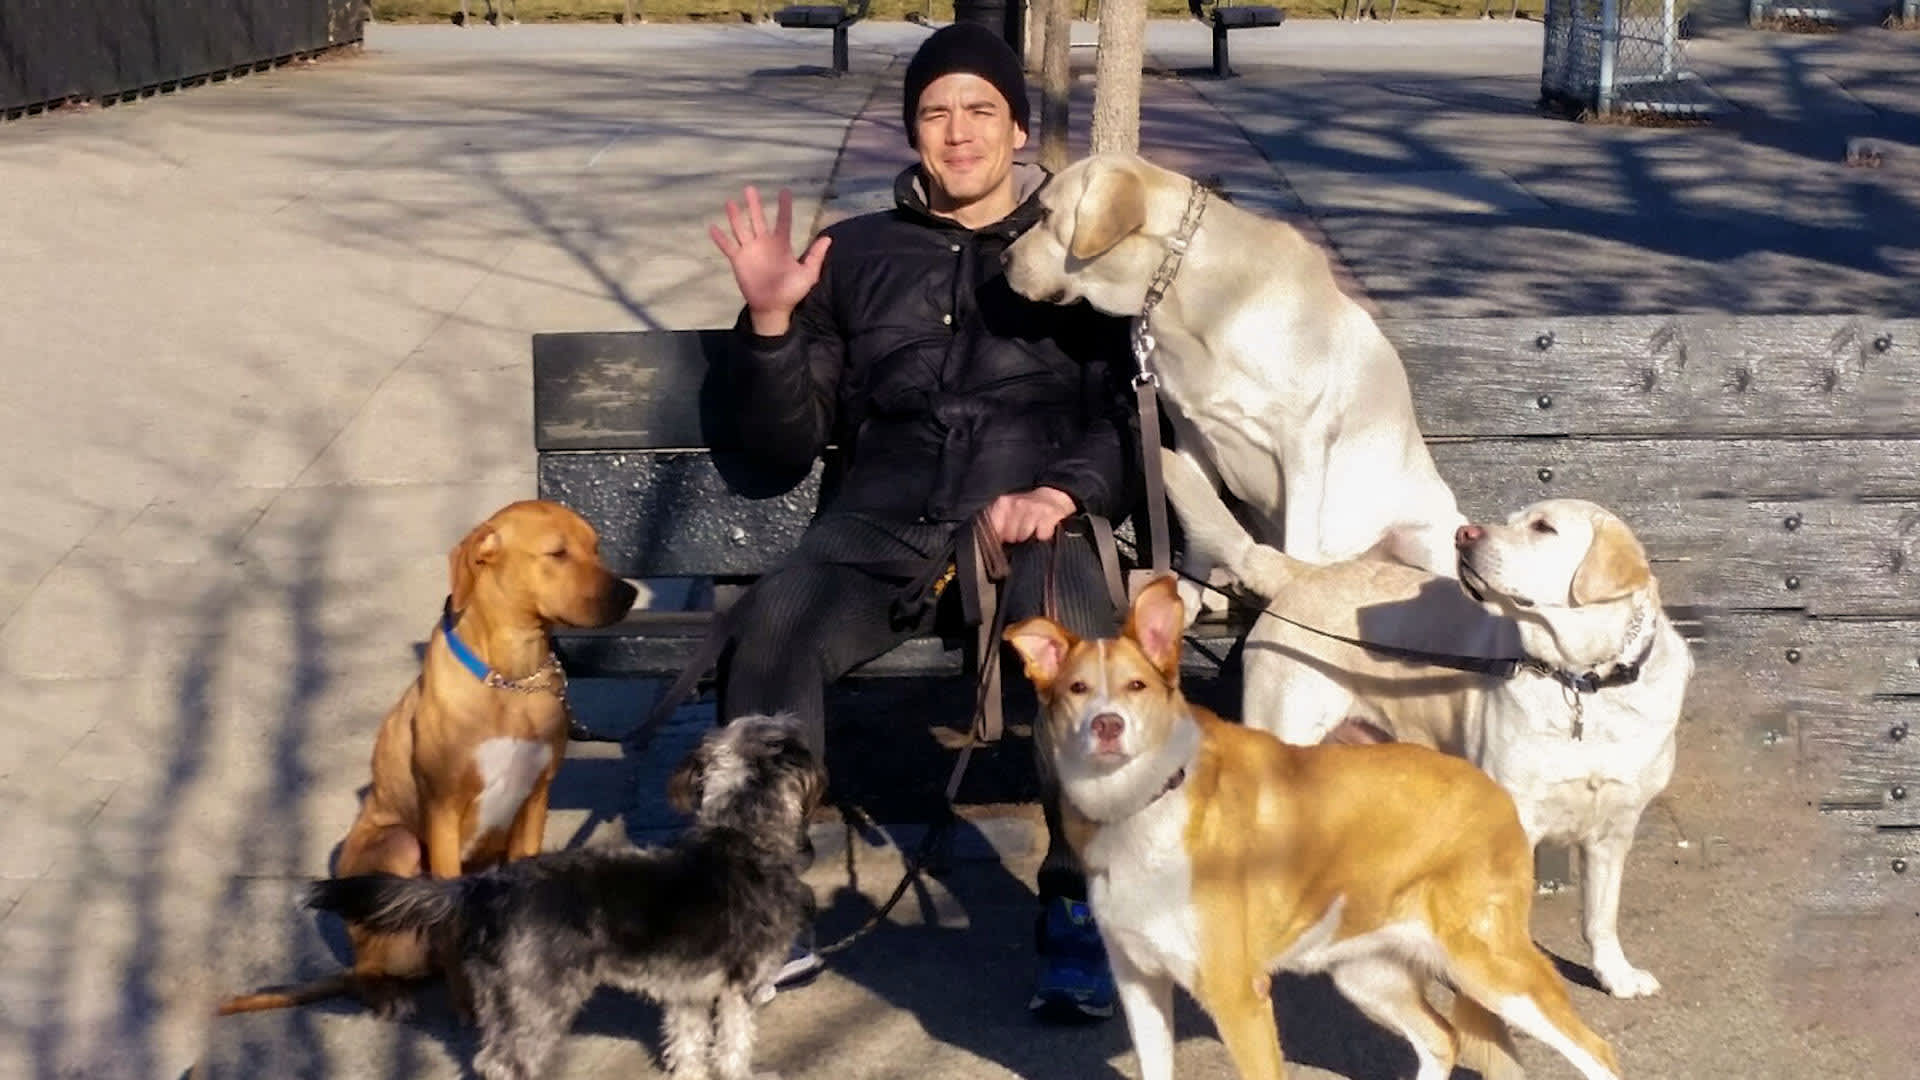 This guy makes six figures a year with his dog walking business